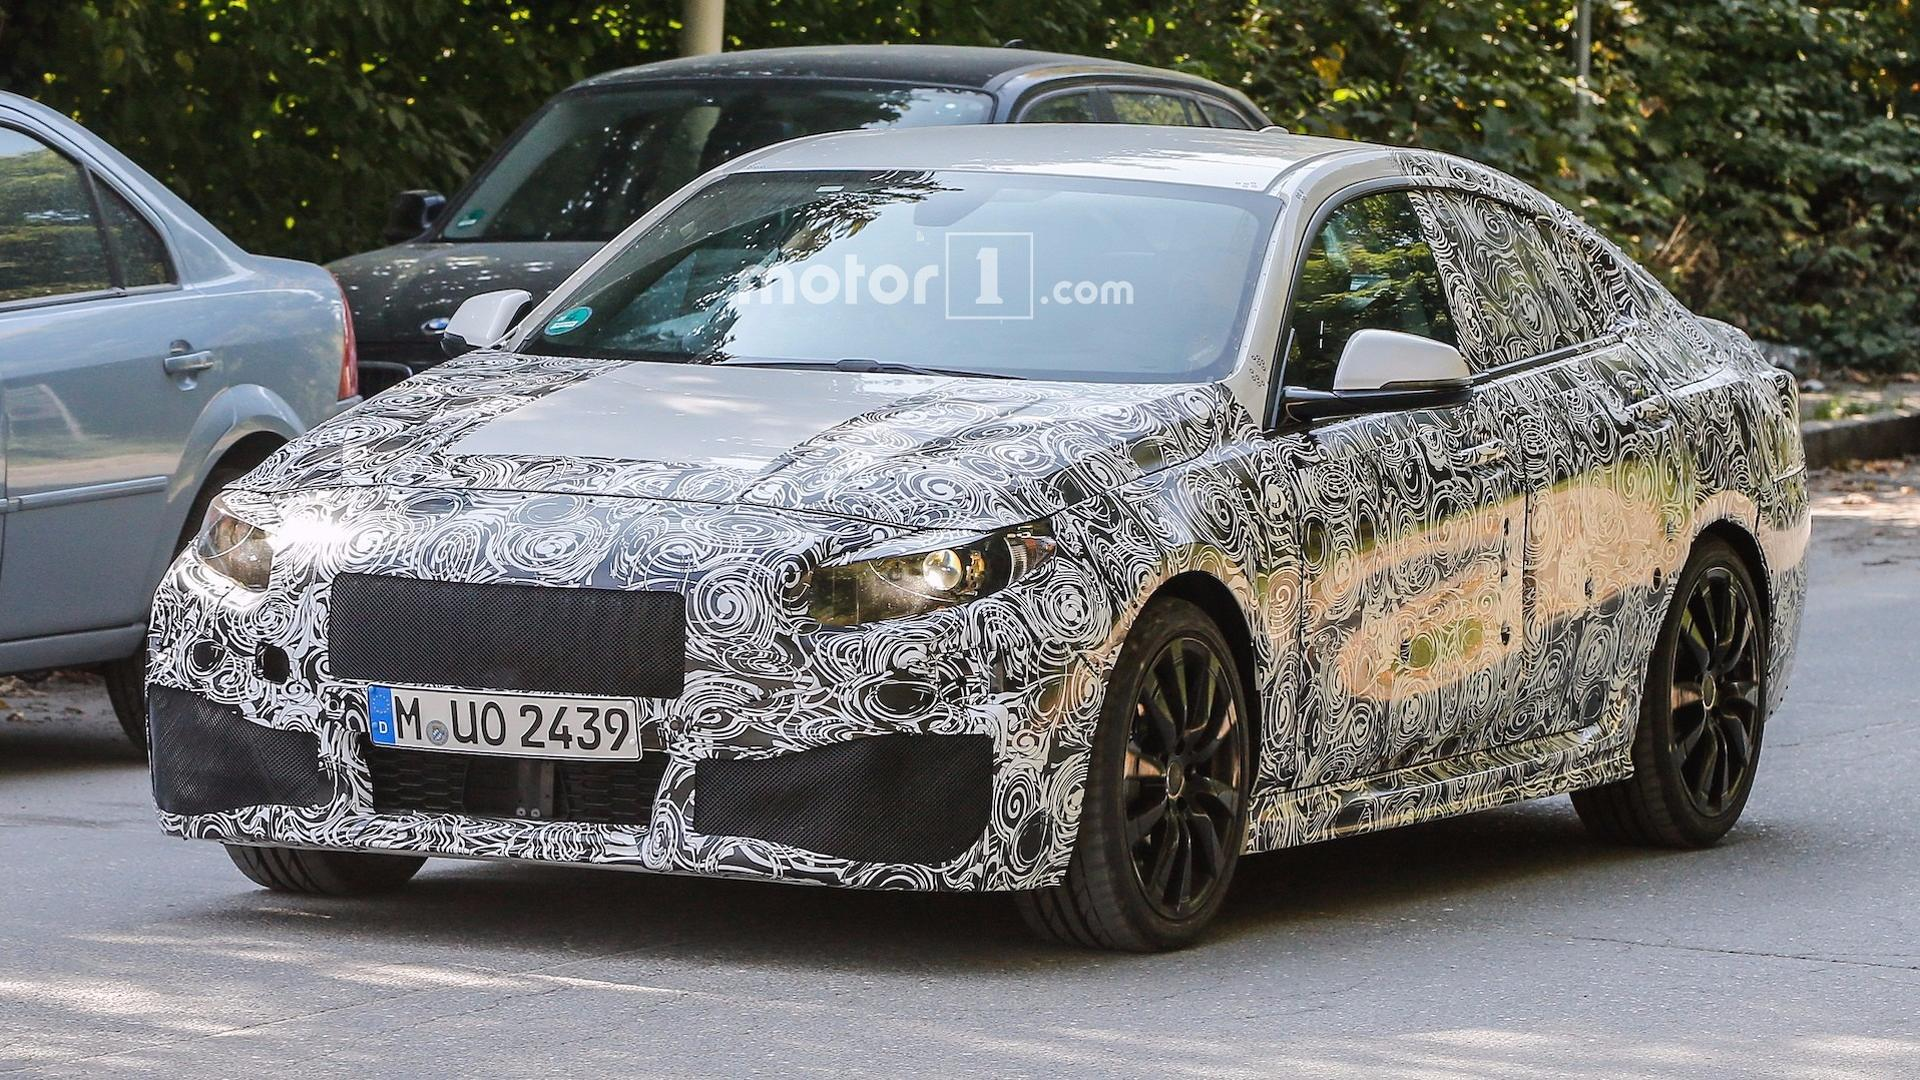 BMW 2 Series Gran Coupe Spied With A Little Less Camo [UPDATE]